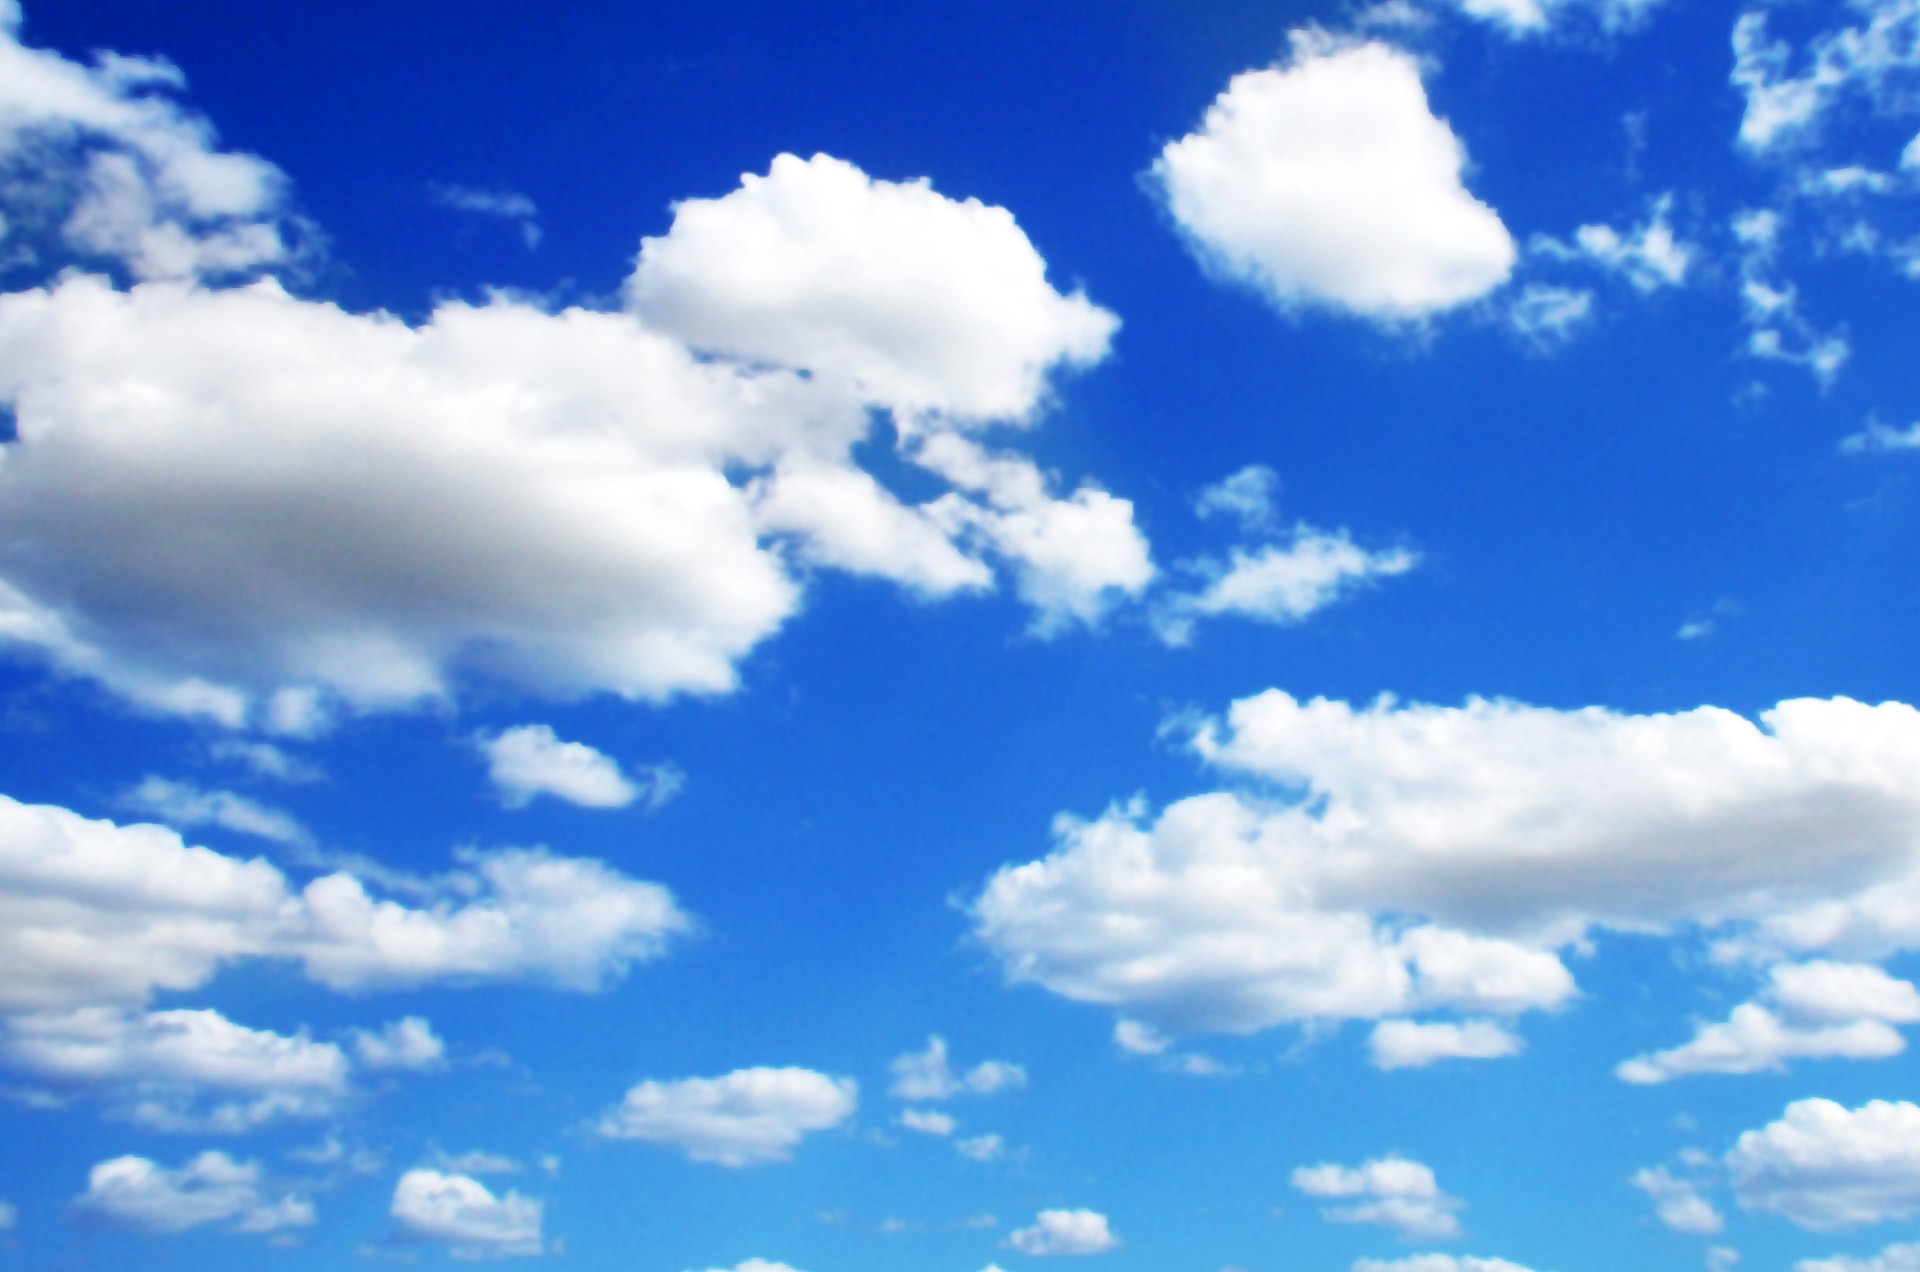 Sky Free Stock Photo - Public Domain Pictures